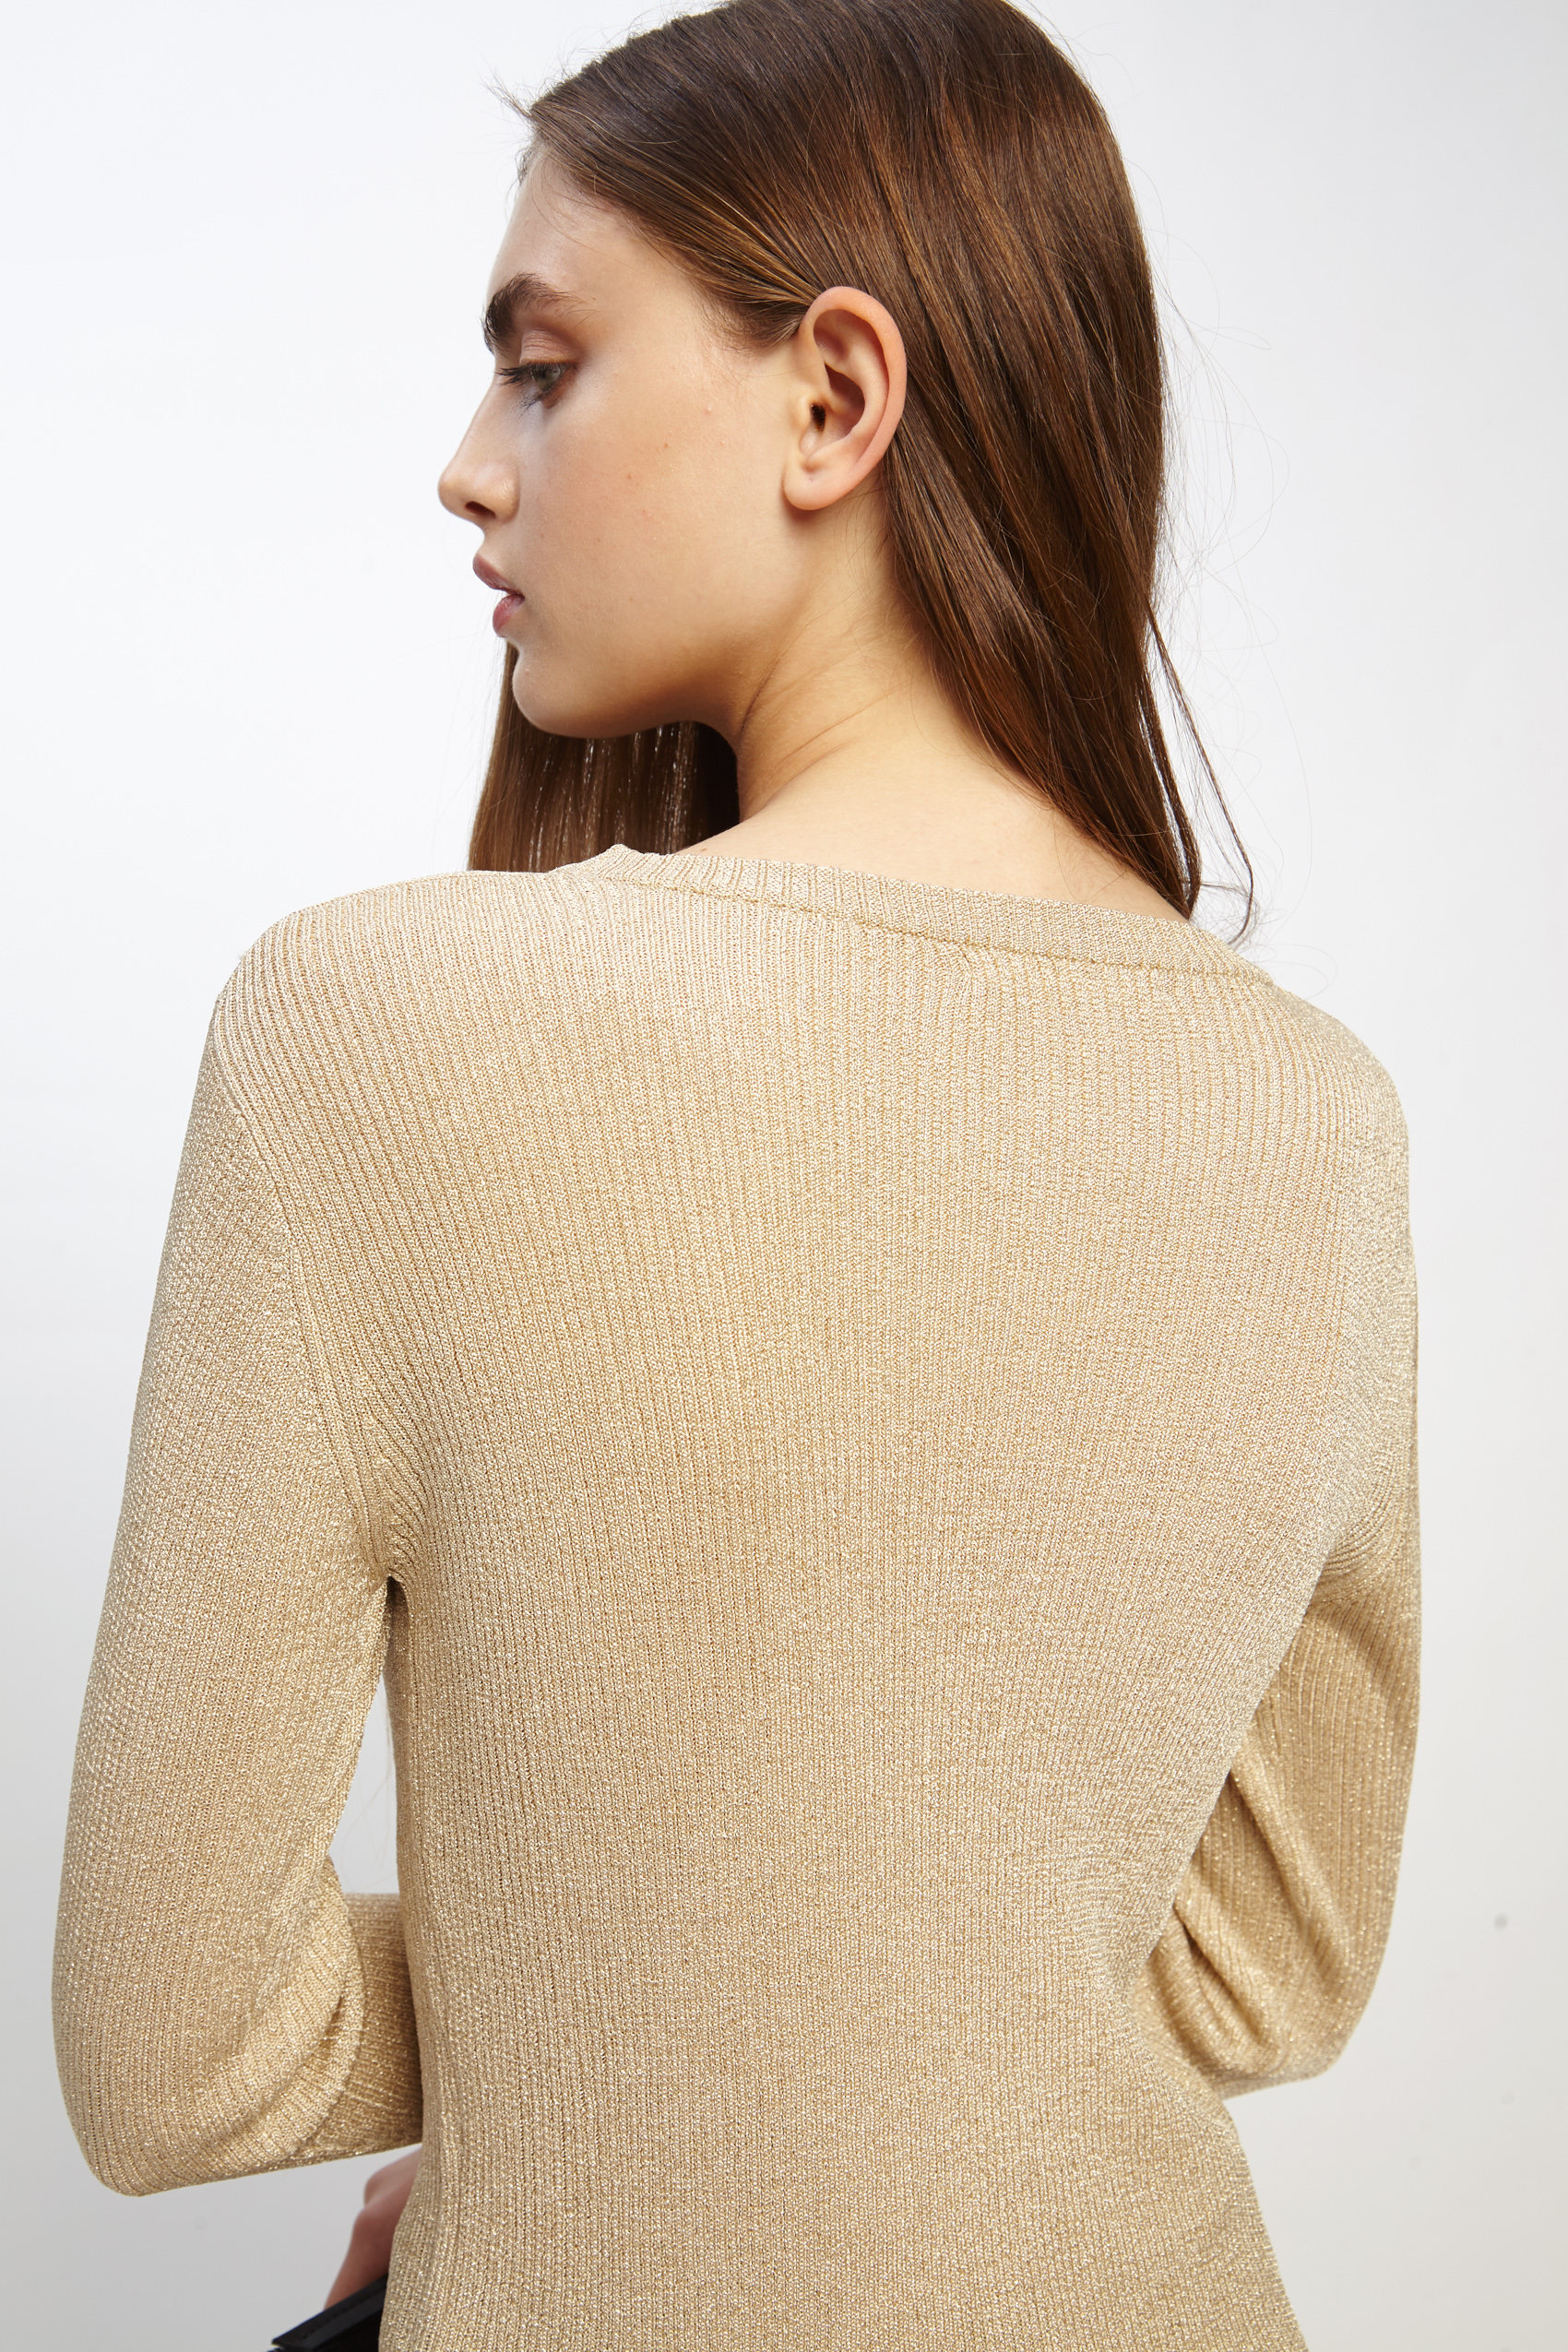 awada_sweater-celine_23-17-2019__picture-2511